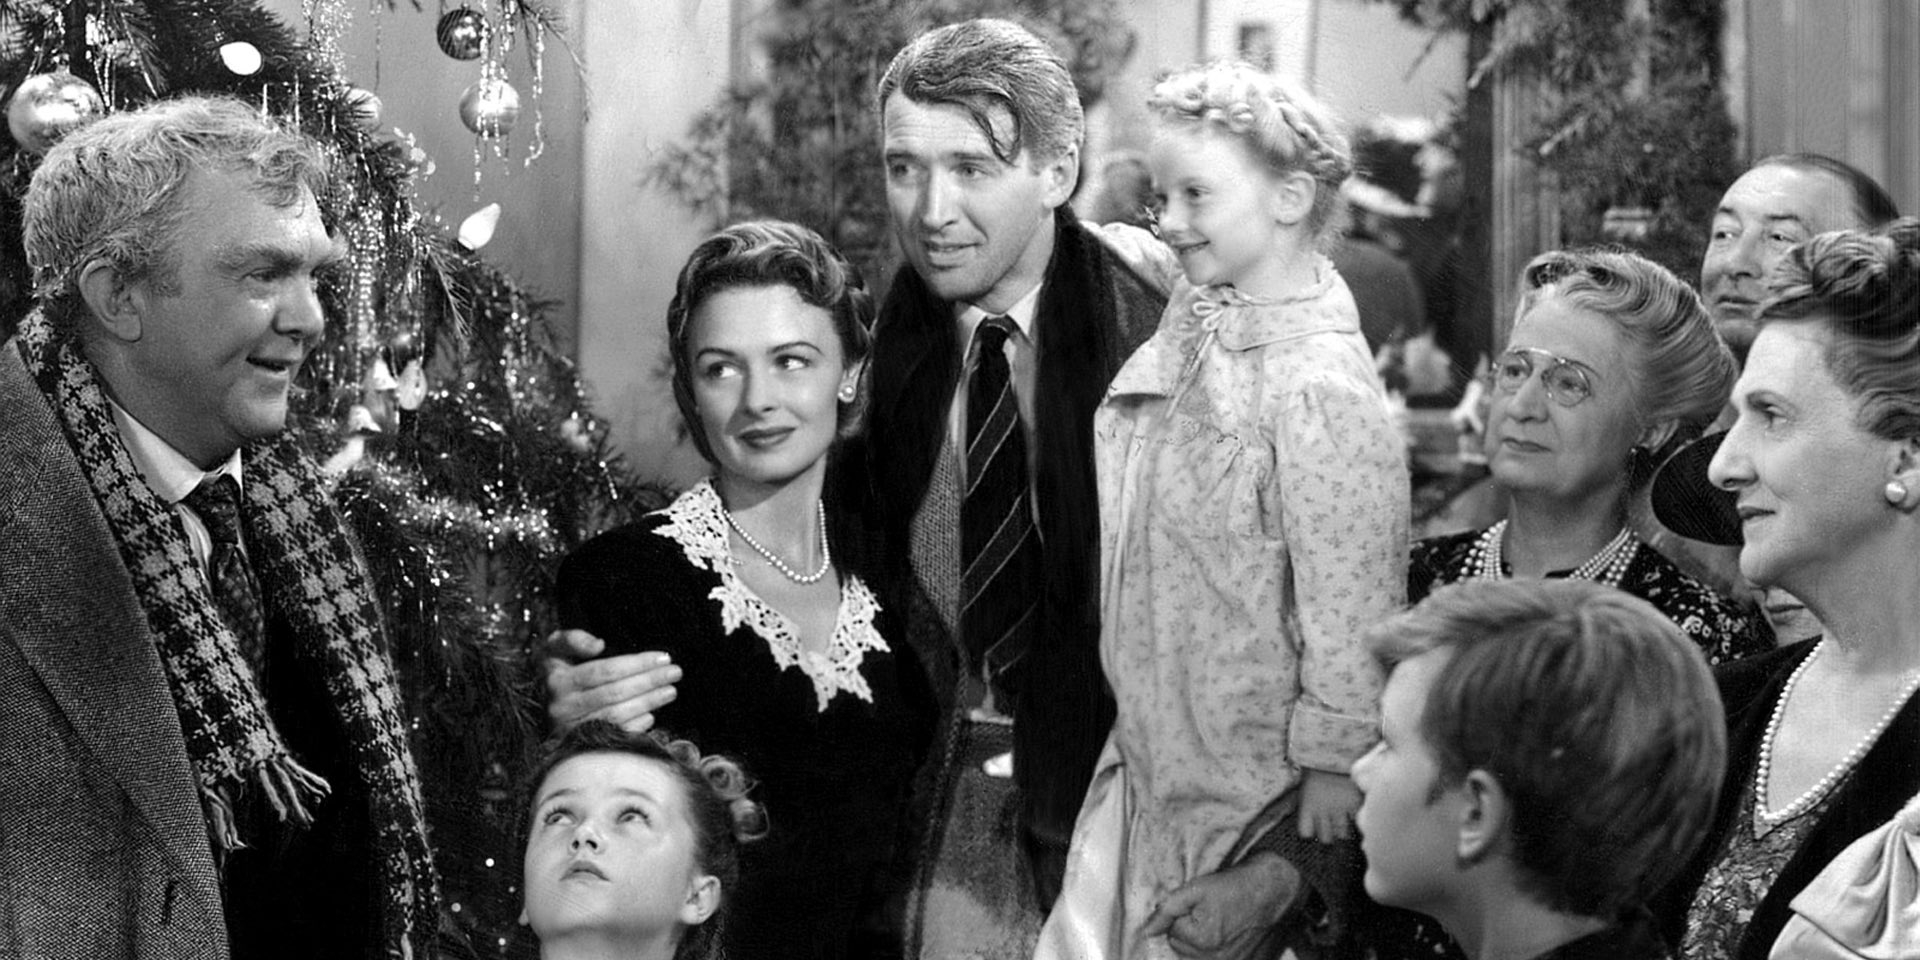 Knoxville tva credit union hours - It S A Wonderful Life Presented By Knoxville Tva Employees Credit Union 10 Dec 2017